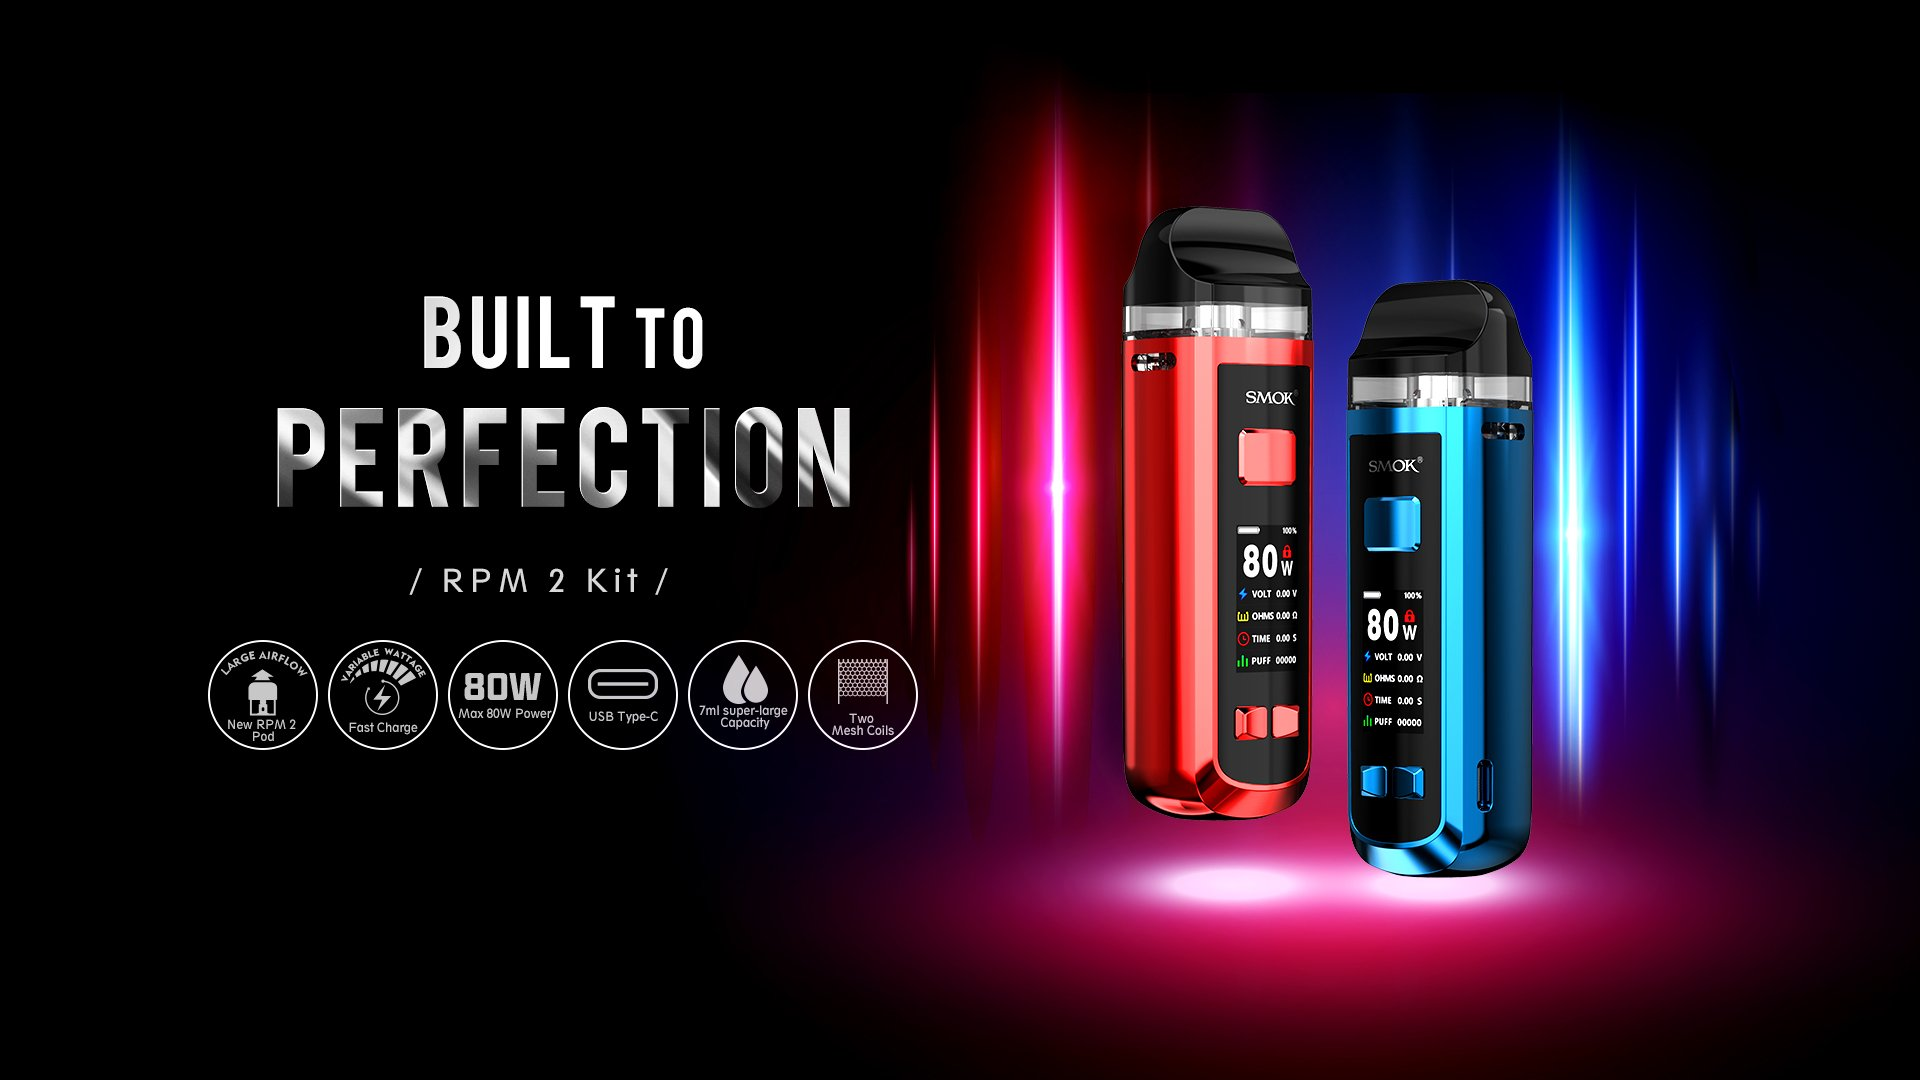 SMOK RPM2 Kit UK Promo